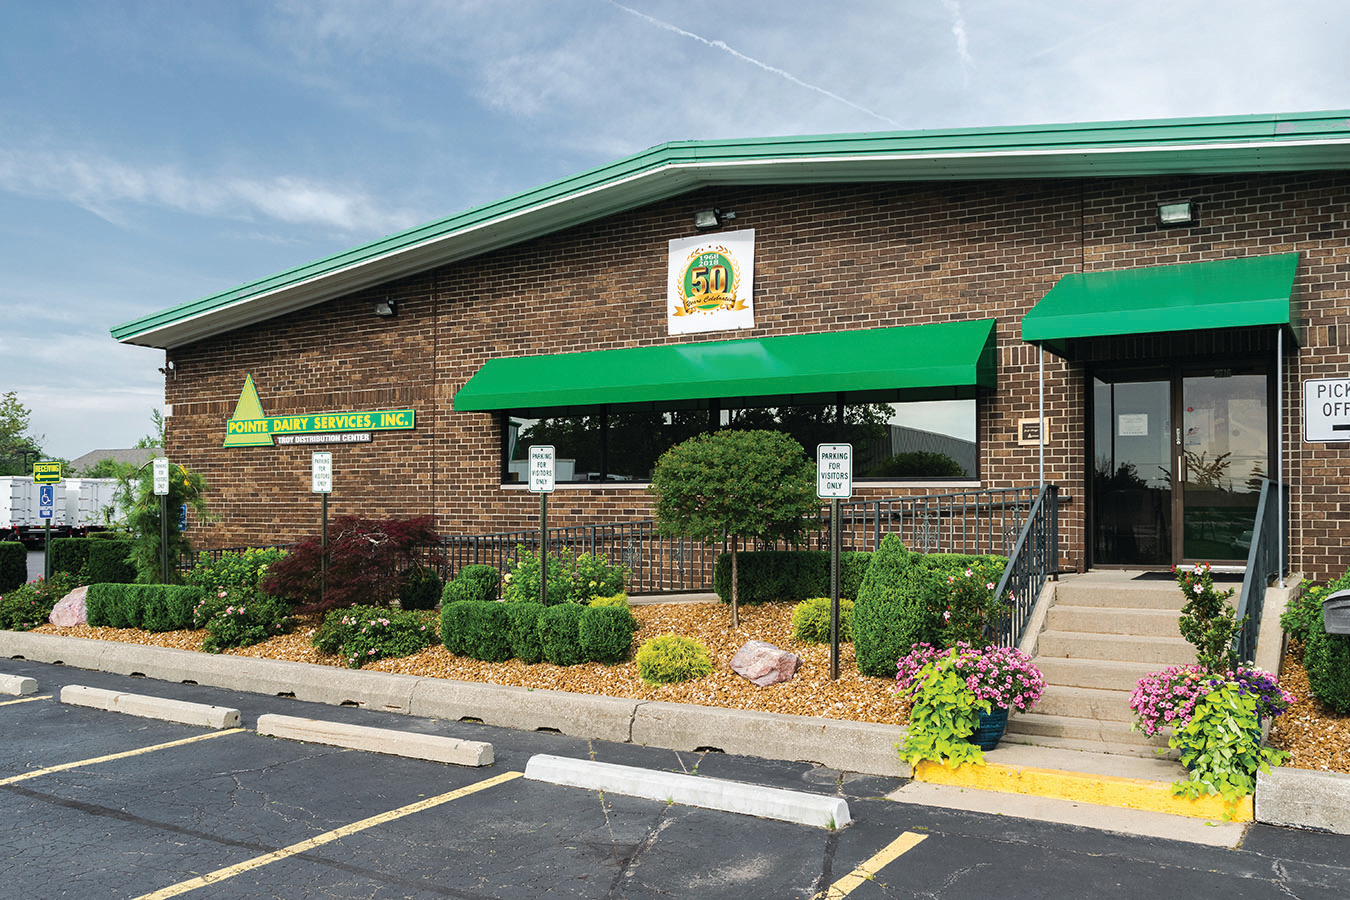 Inviting Commercial Landscaping